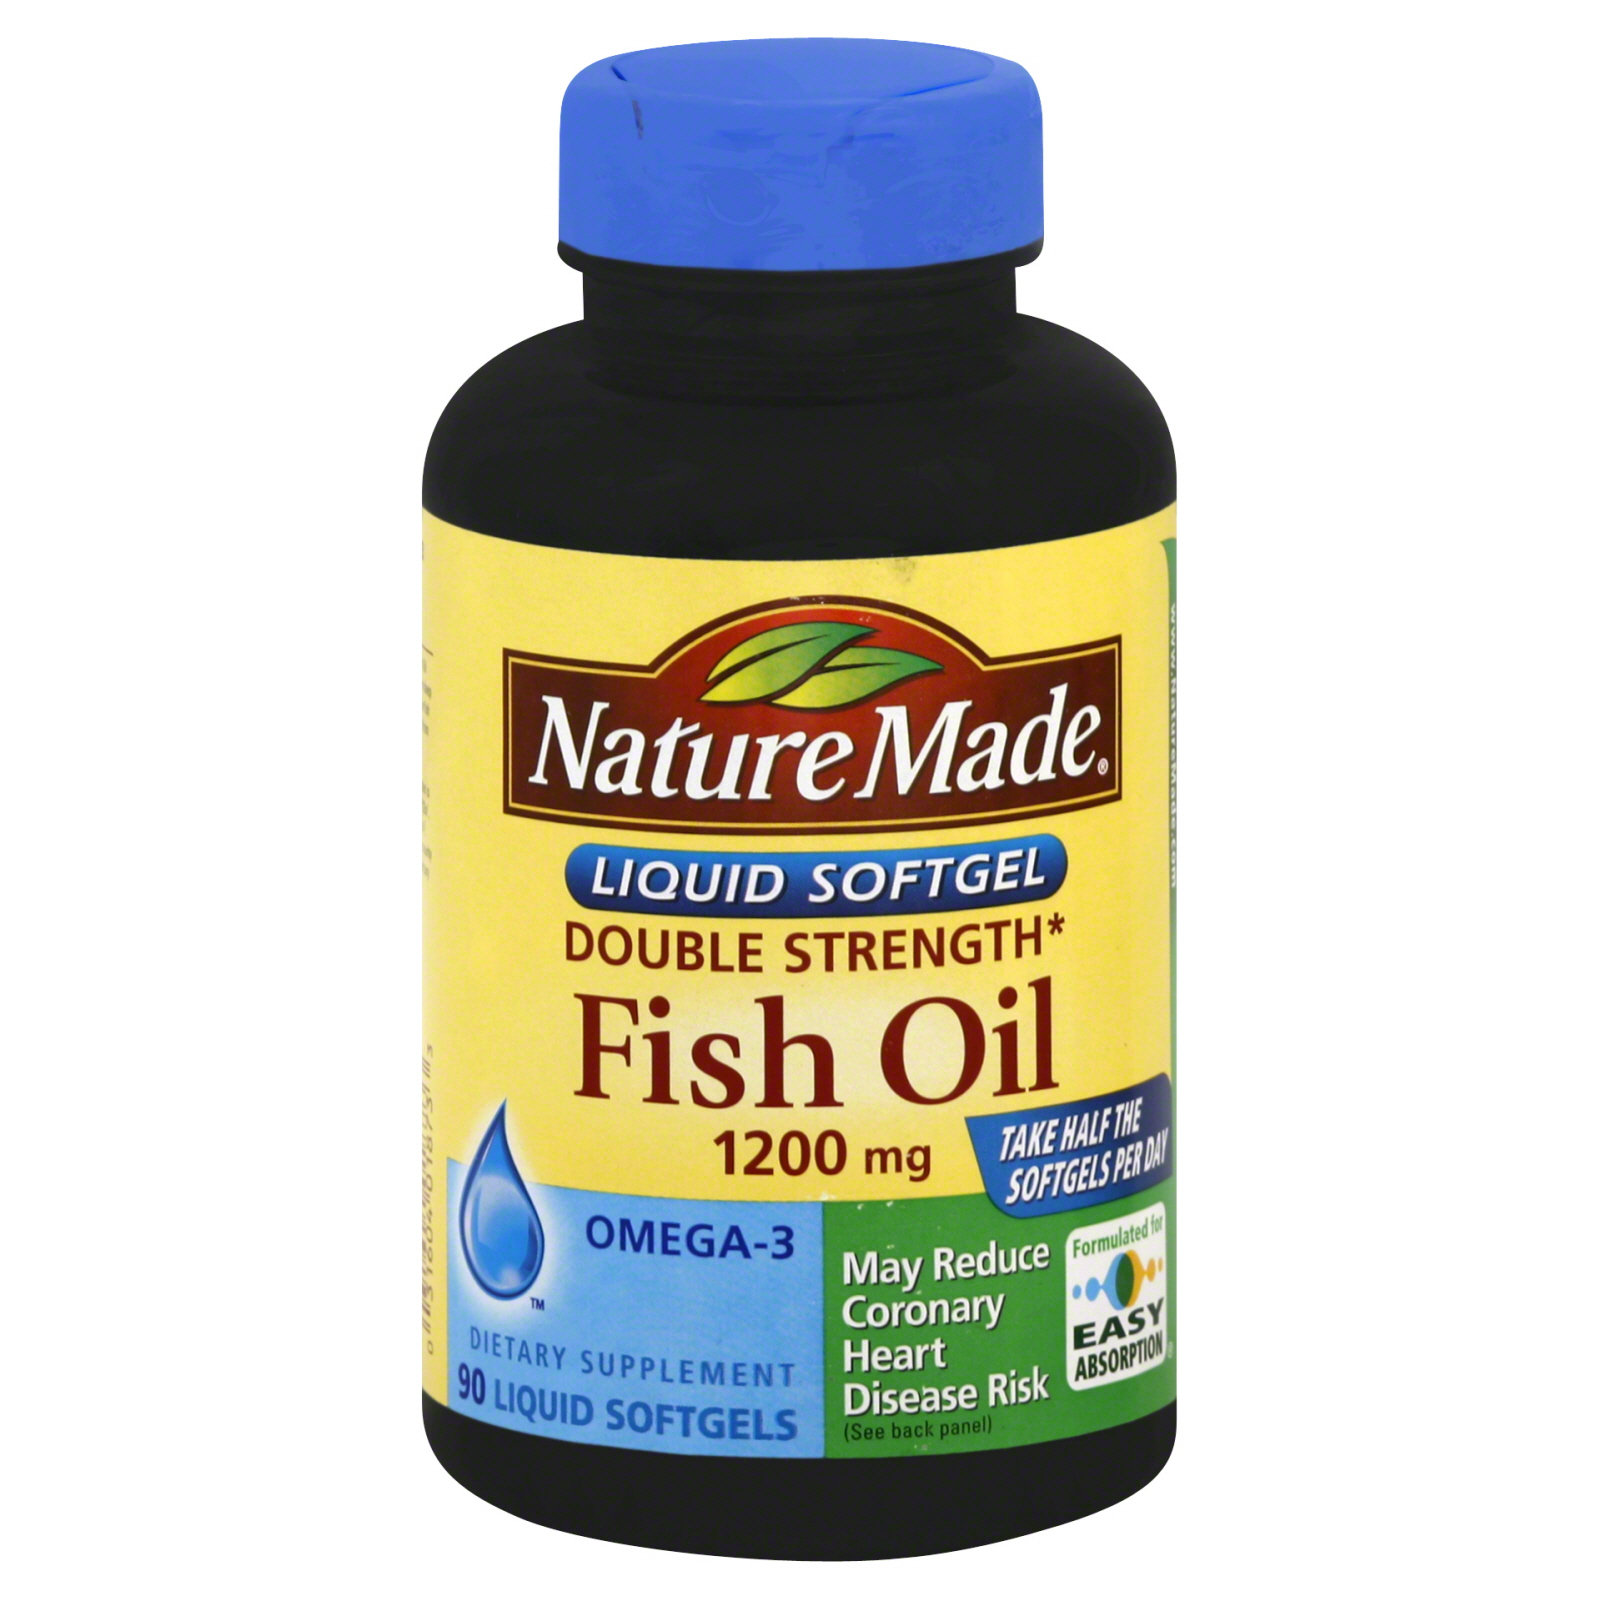 Fish Oil, Double Strength, 1200 mg, Liquid